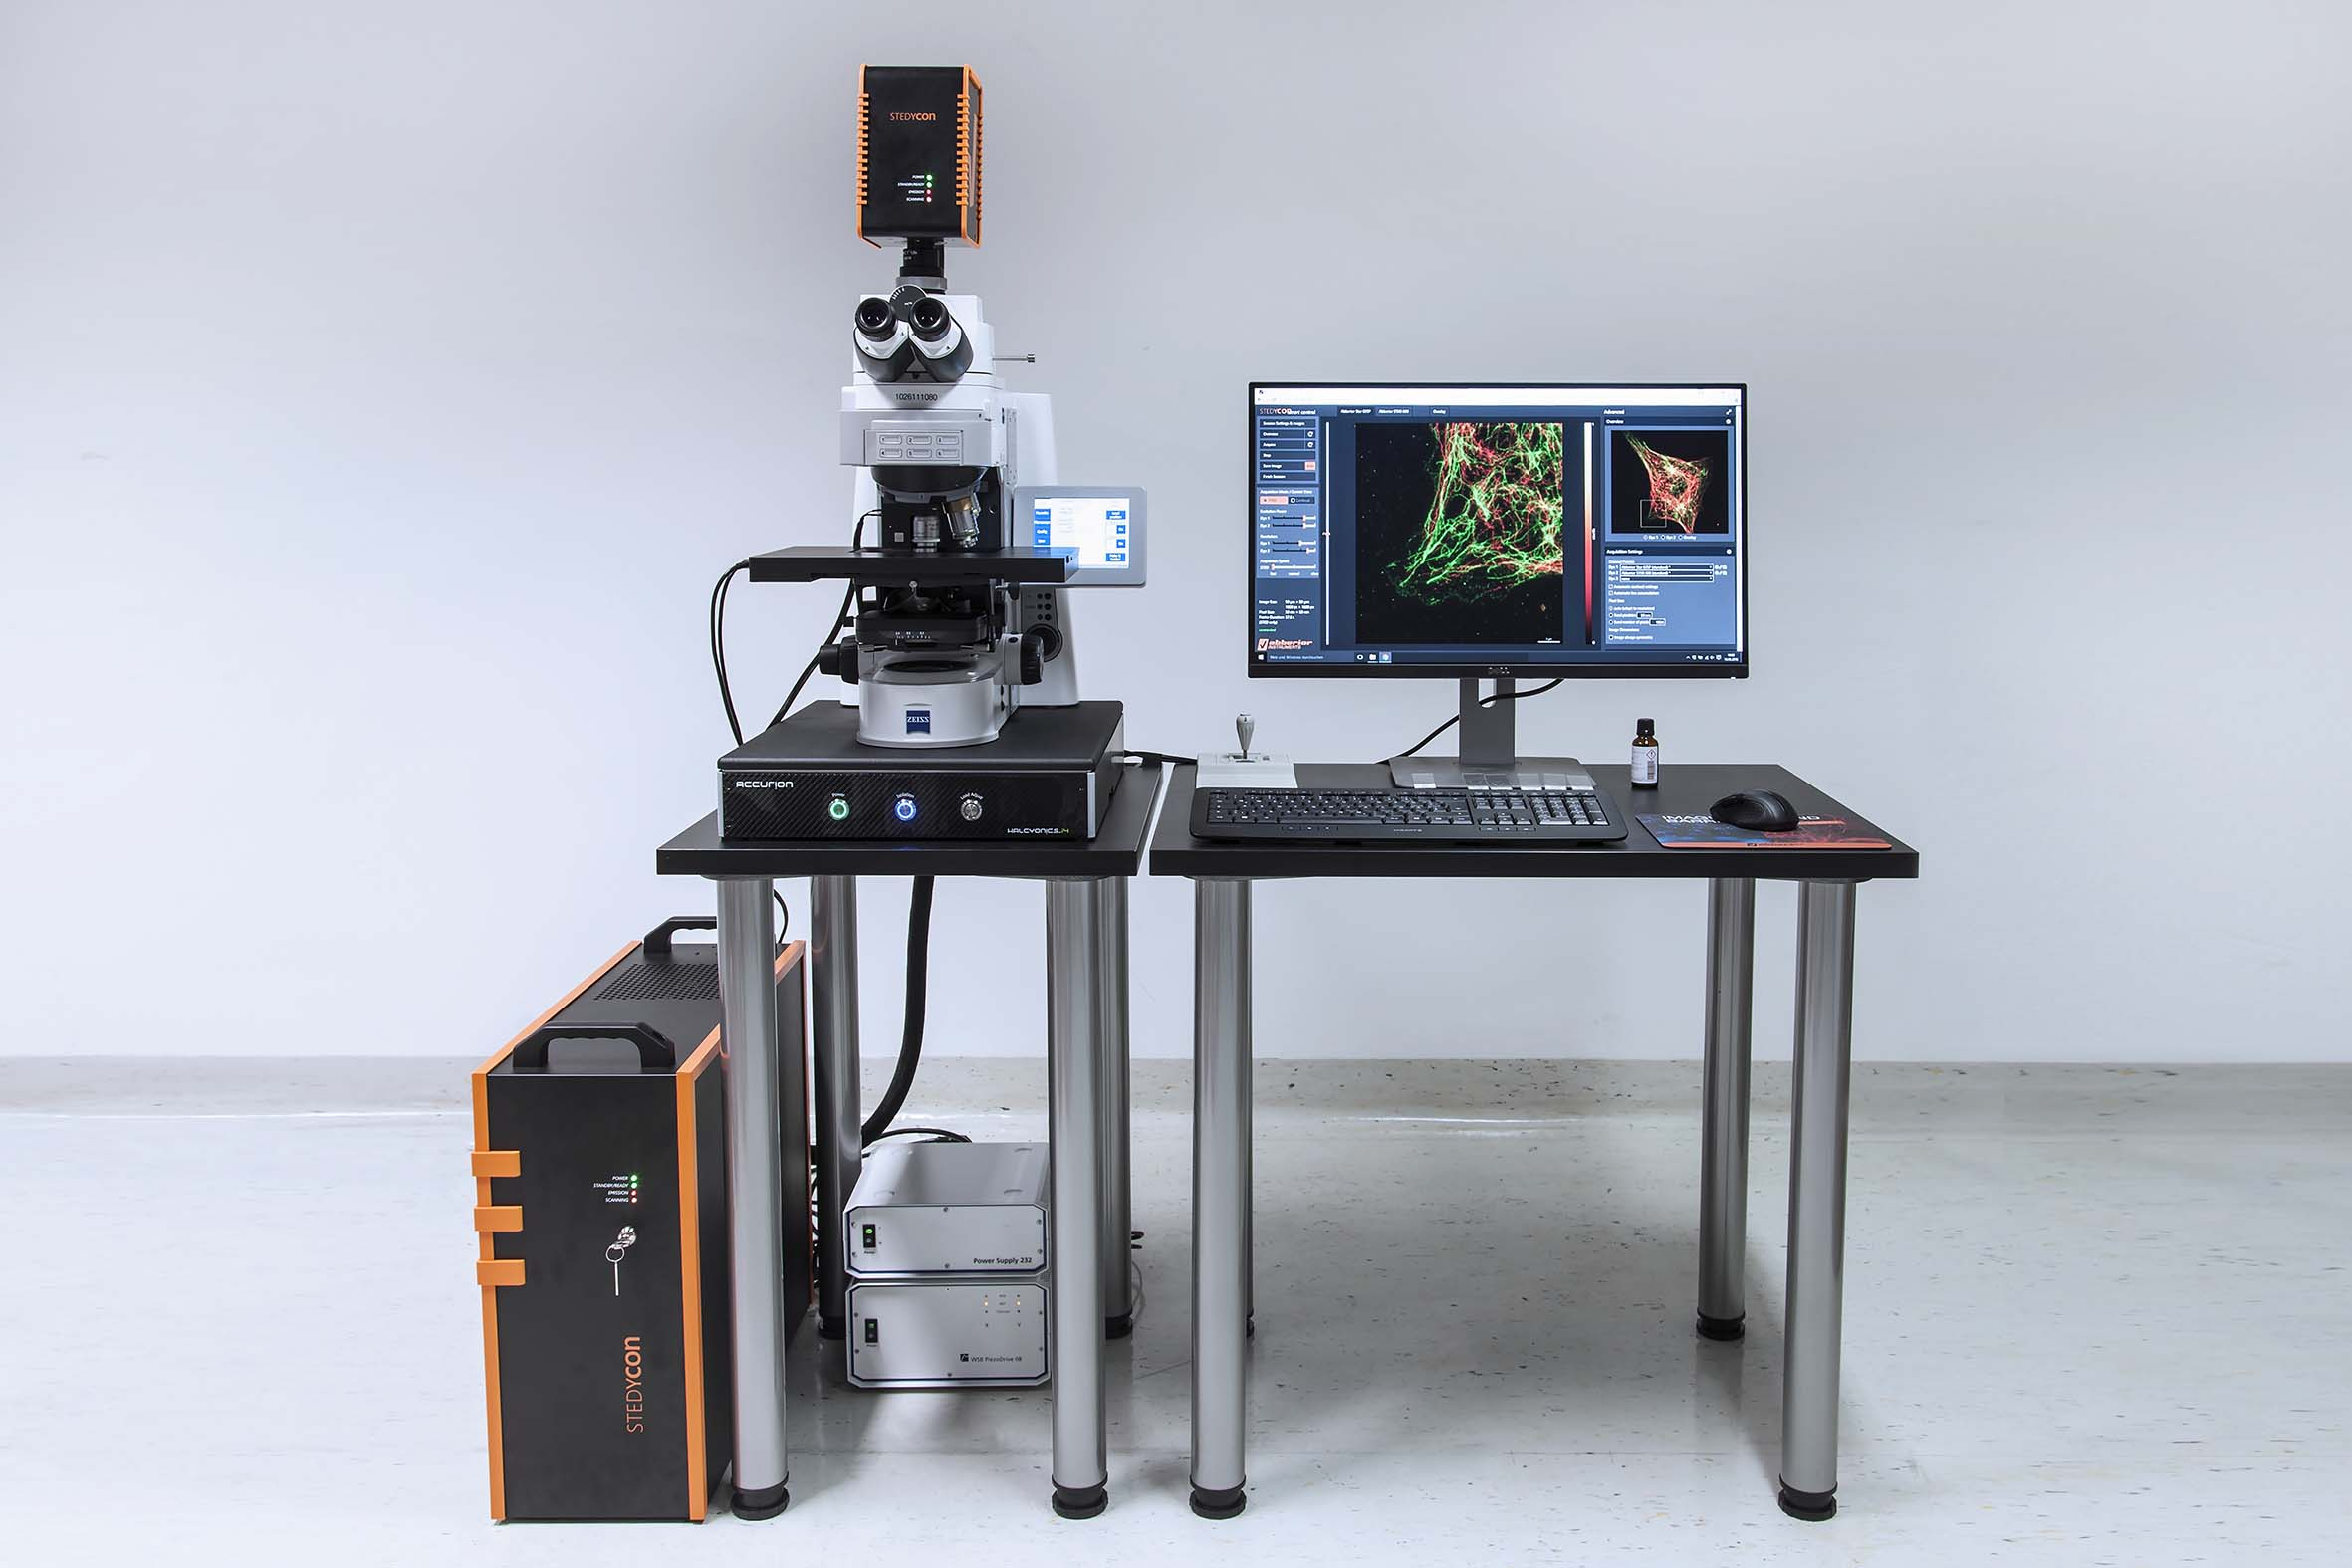 Abberior Instruments and Super Resolution Microscopy at Lastek